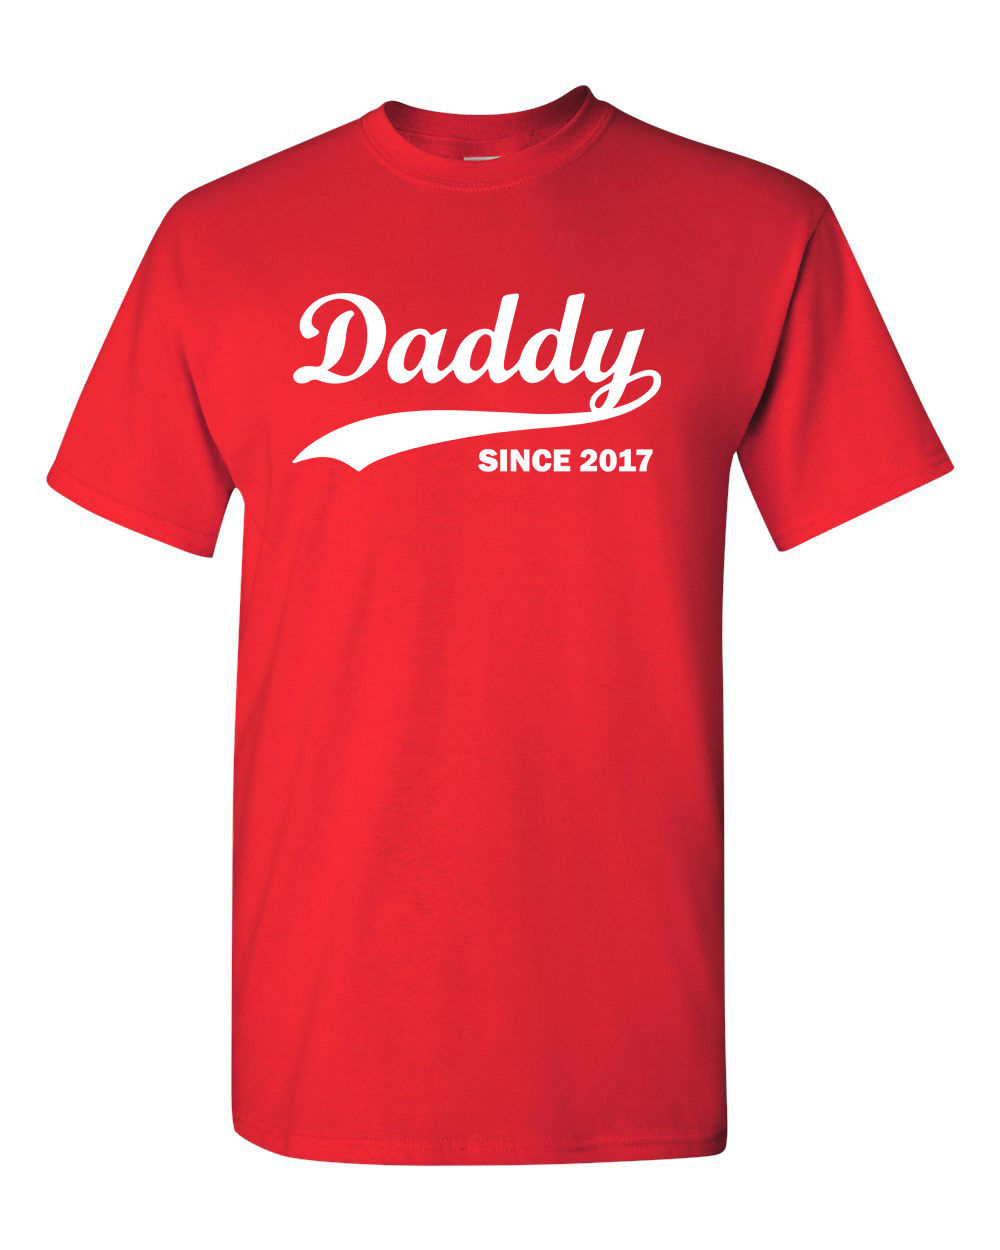 4c765d056 Daddy Since 2017 Fathers Day Gift Baby Shower Reunion Dad Men's Tee T Shirt  2017 Short Sleeve Cotton T Shirts Man Clothing-in T-Shirts from Men's  Clothing ...